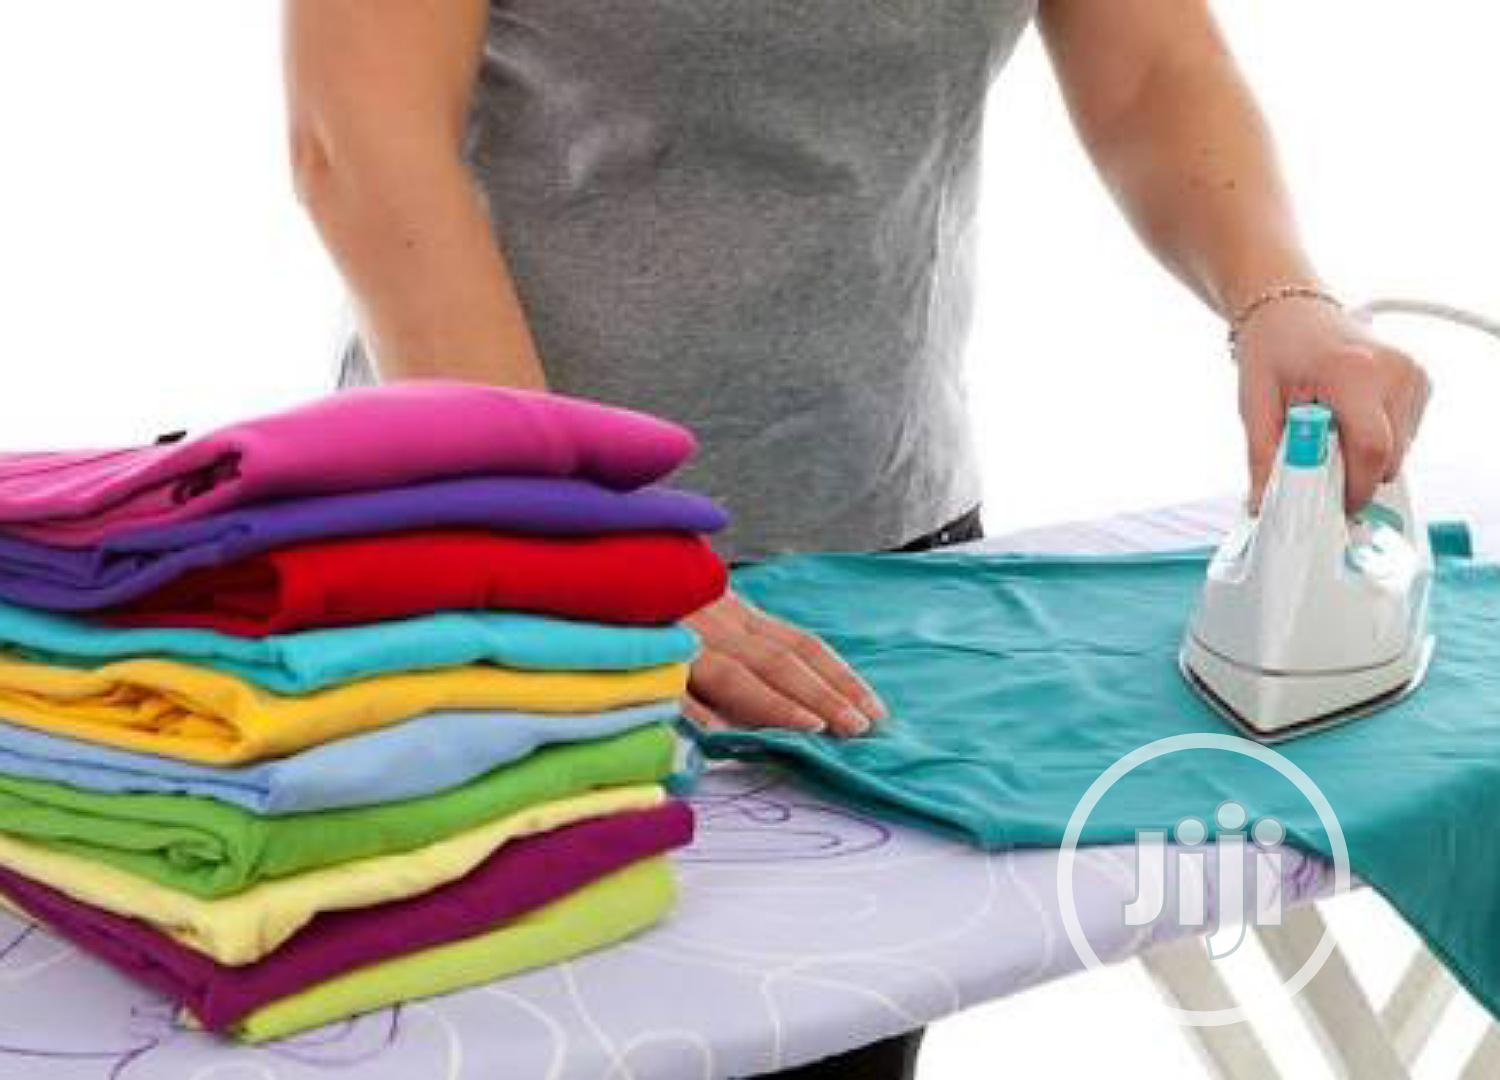 Do You Need A Laundry Expert?